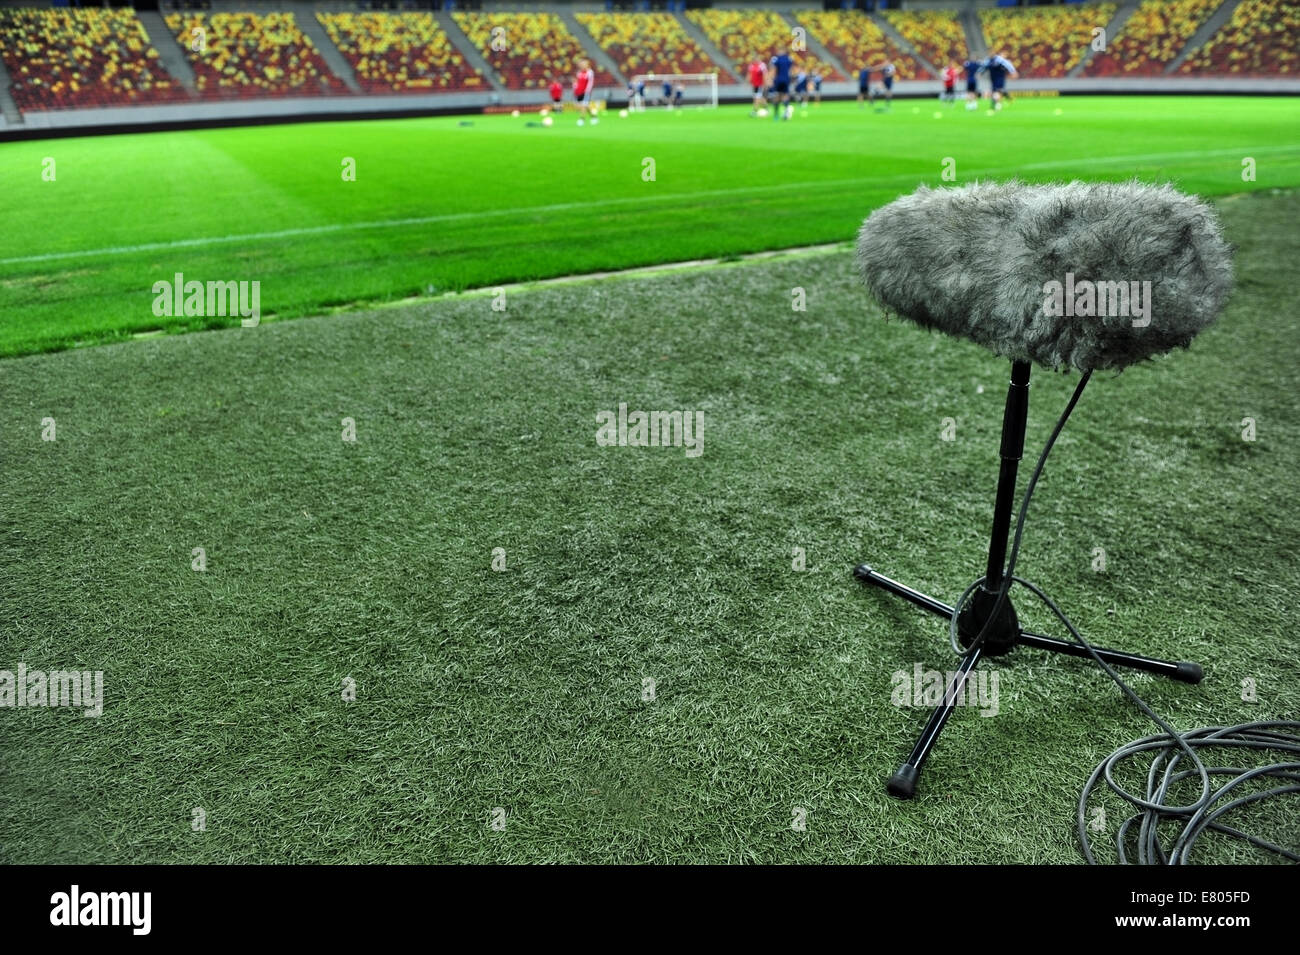 Professional sport microphone on a football field with players training in the background - Stock Image